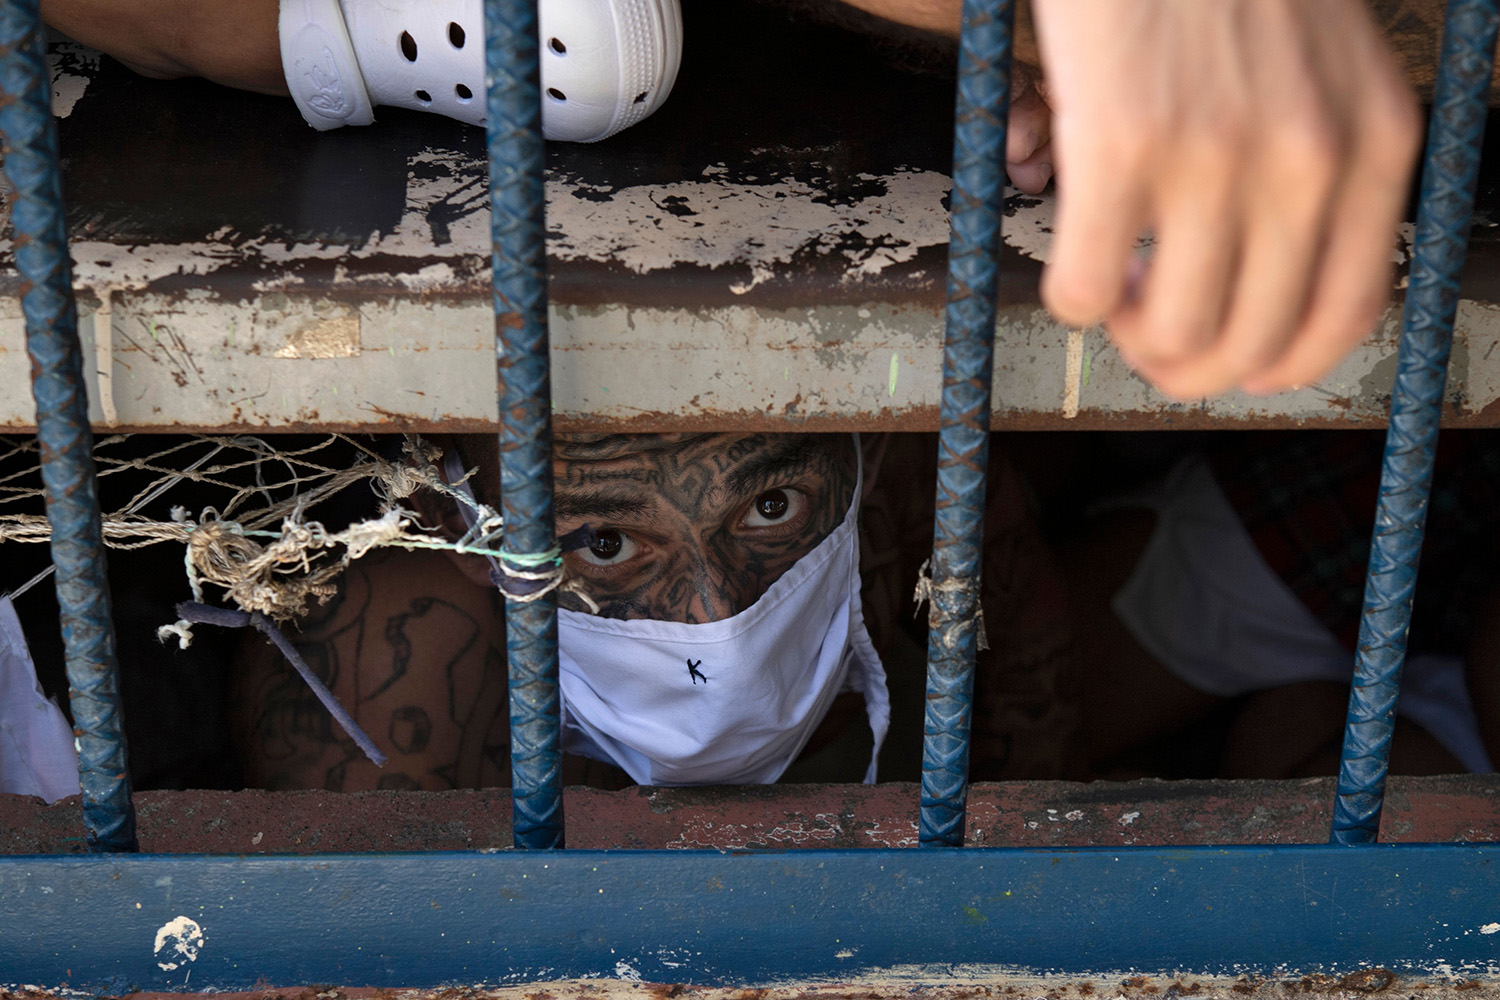 A member of the gang Barrio 18 looks out from an overcrowded cell at the Quezaltepeque prison in Quezaltepeque, El Salvador, on Sept. 4. YURI CORTEZ/AFP via Getty Images